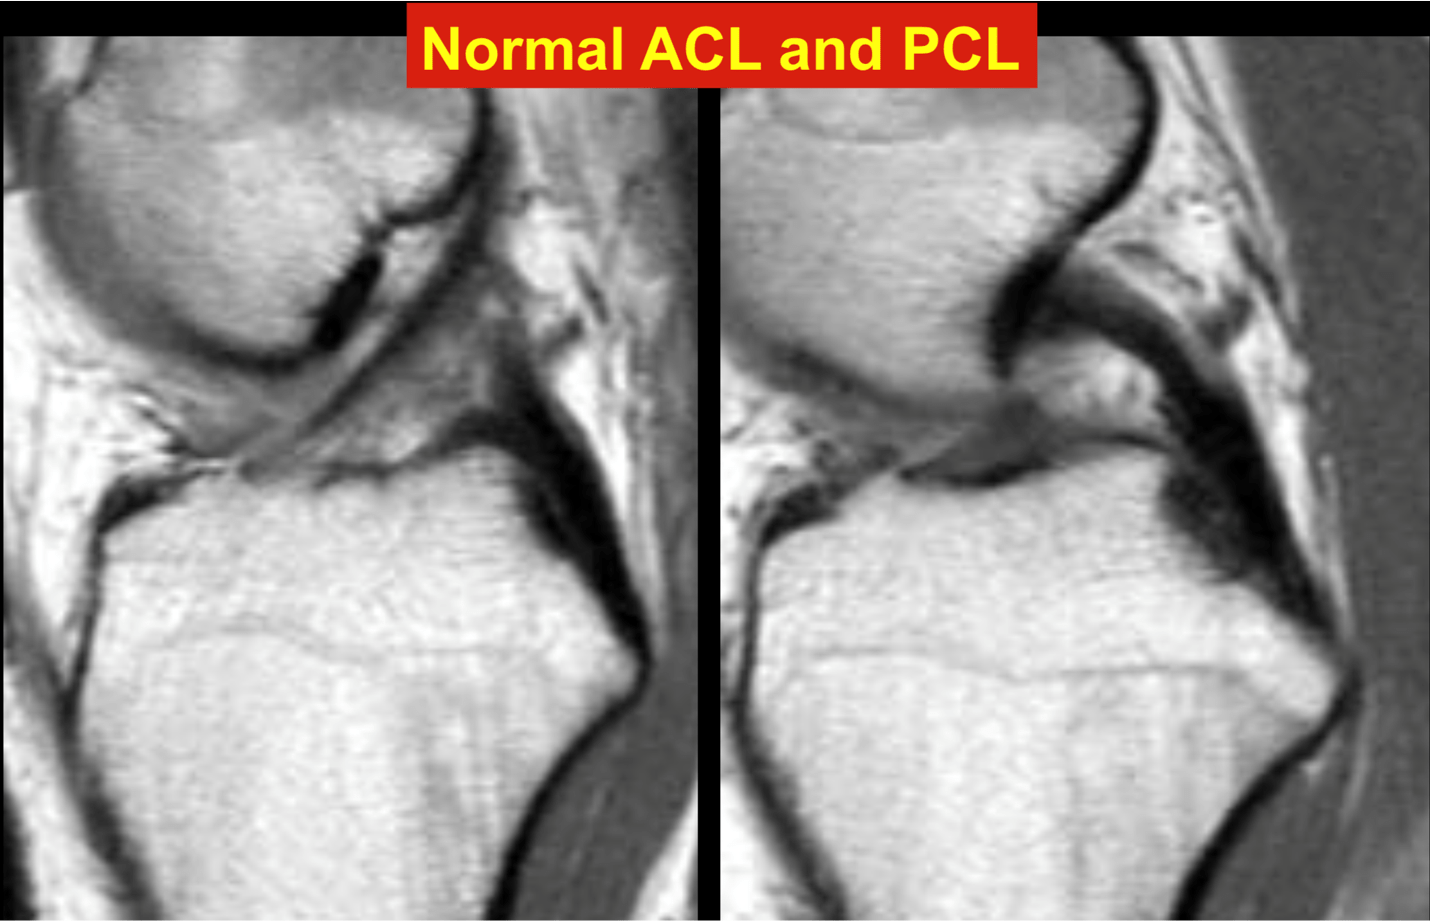 Normal ACL and PCL